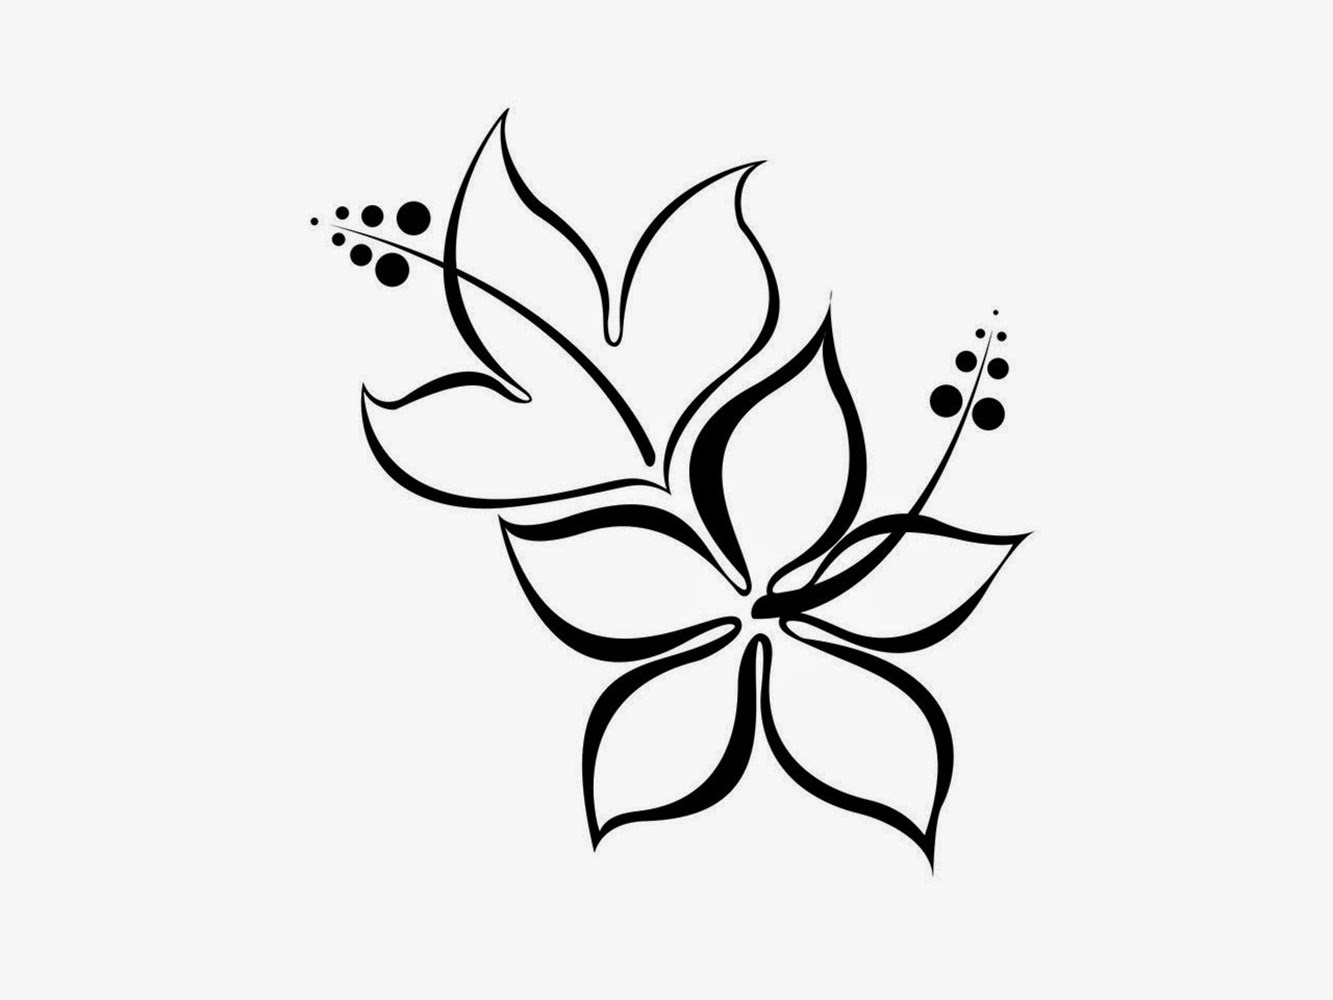 13 Black And White Simple Flower Designs Images Hibiscus Flower